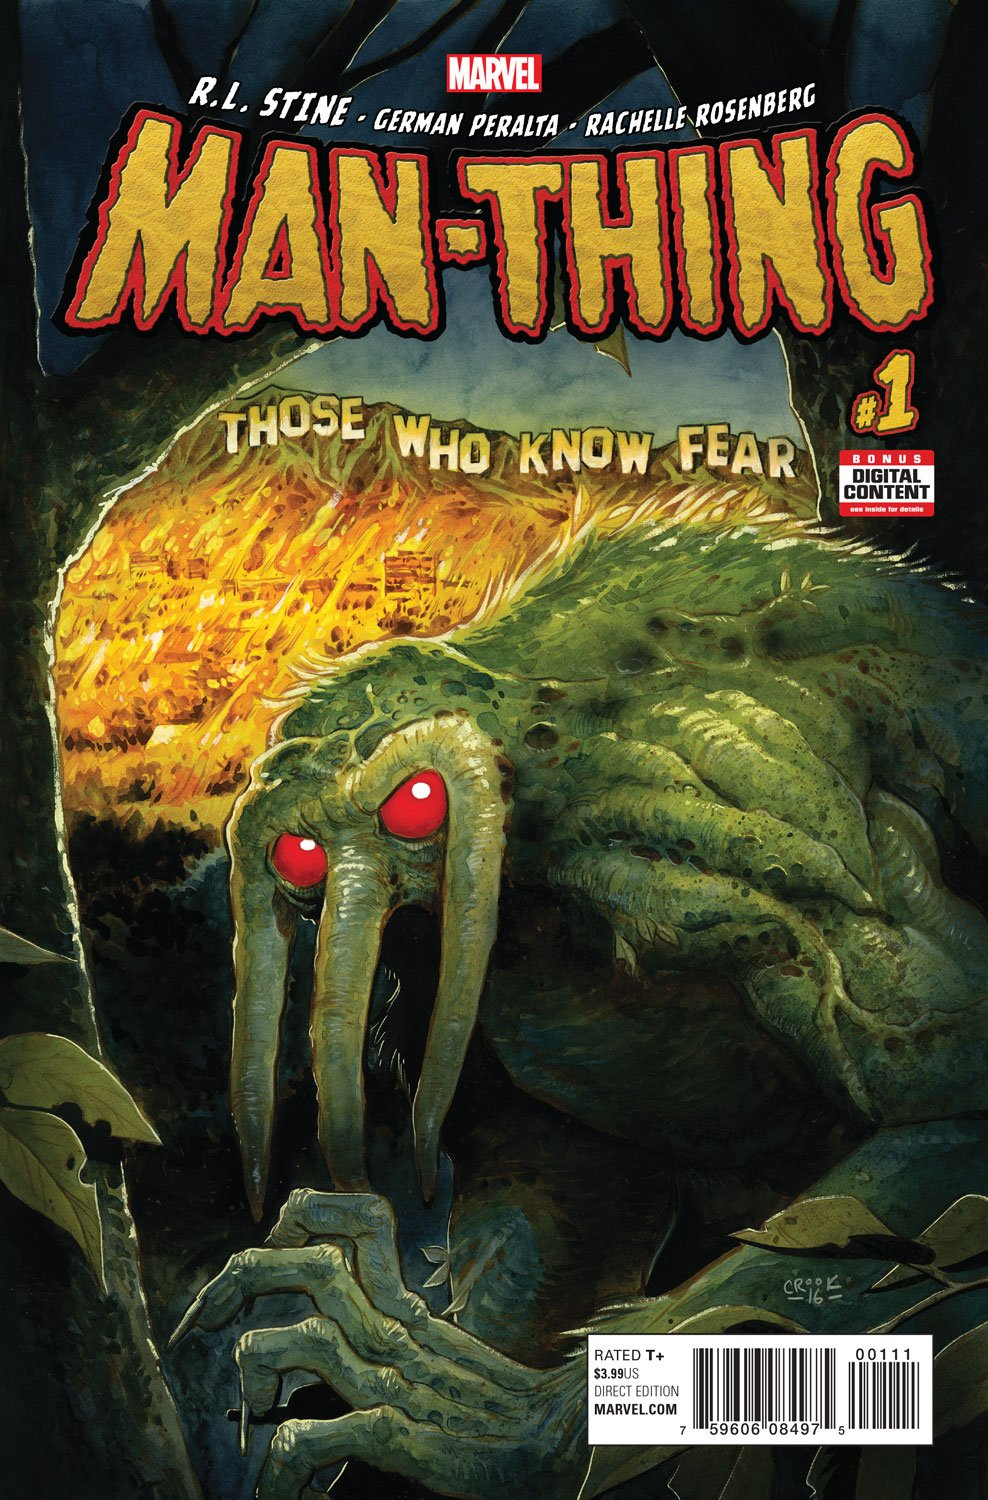 Man-Thing #1 Review